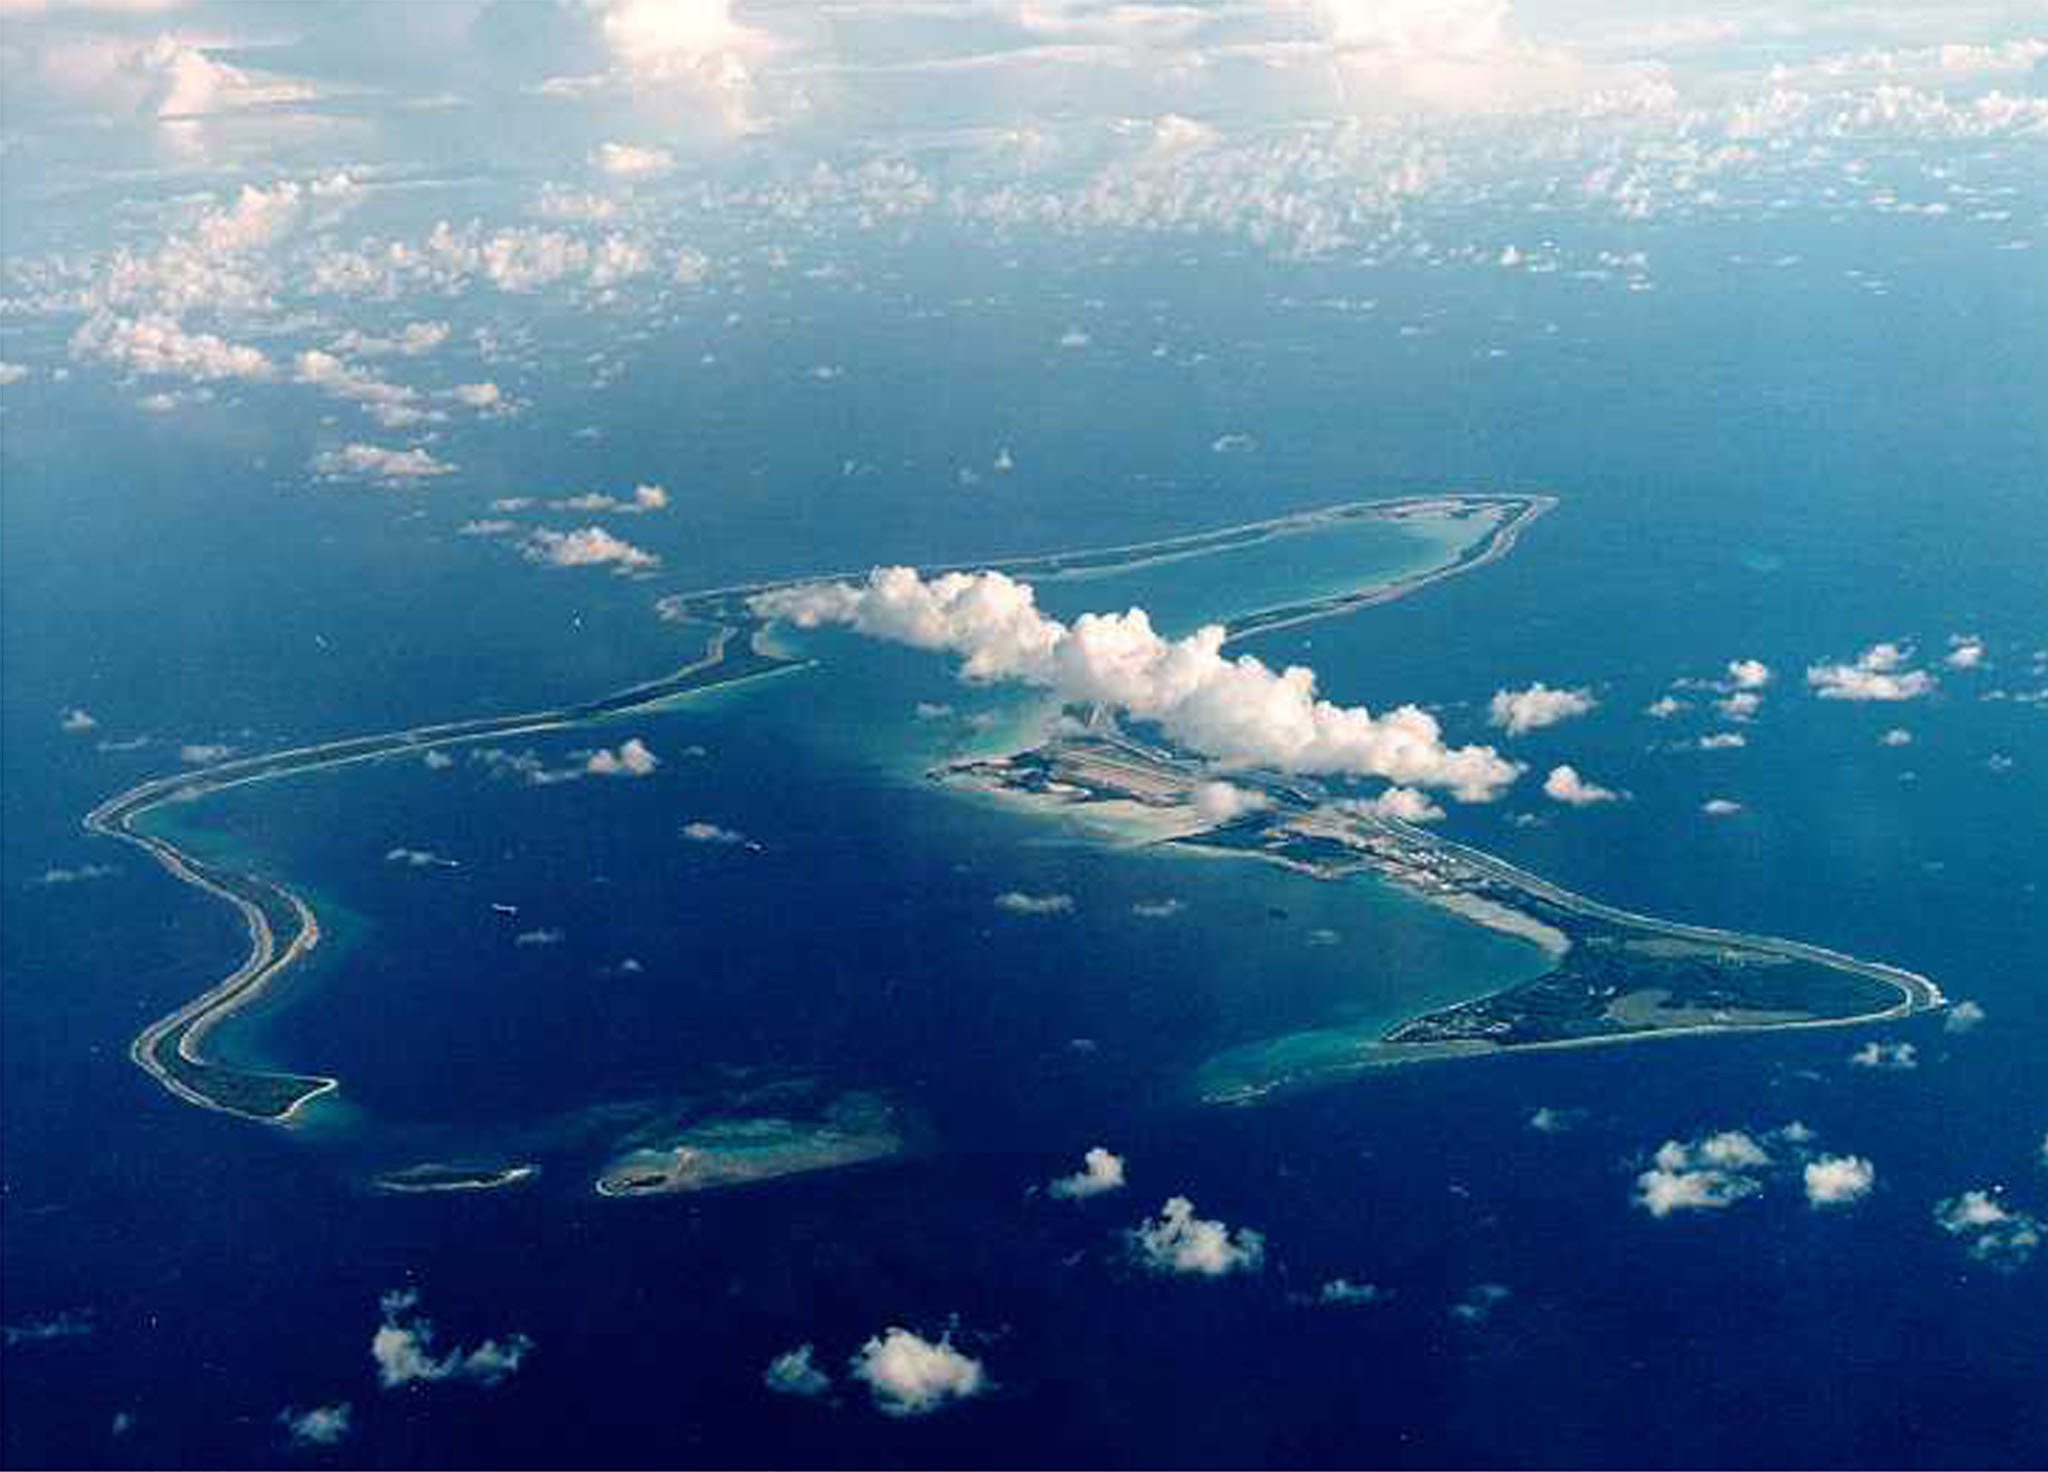 Photo of Diego Garcia, largest island in the Chagos archipelago and site of a major United States military base in the middle of the Indian Ocean leased from Britain in 1966. Exiled inhabitants of Diego Garcia began a challenge July 17 to a British government decision to kick them off the remote island 30 years ago to make way for the U.S. base. Thousands of islanders from the 65-island Chagos archipelago, many of them born in exile in Mauritius, want Britain to return them to their homeland.clh/HO/U.S.CLH/ - RP2DRHZEXIAA